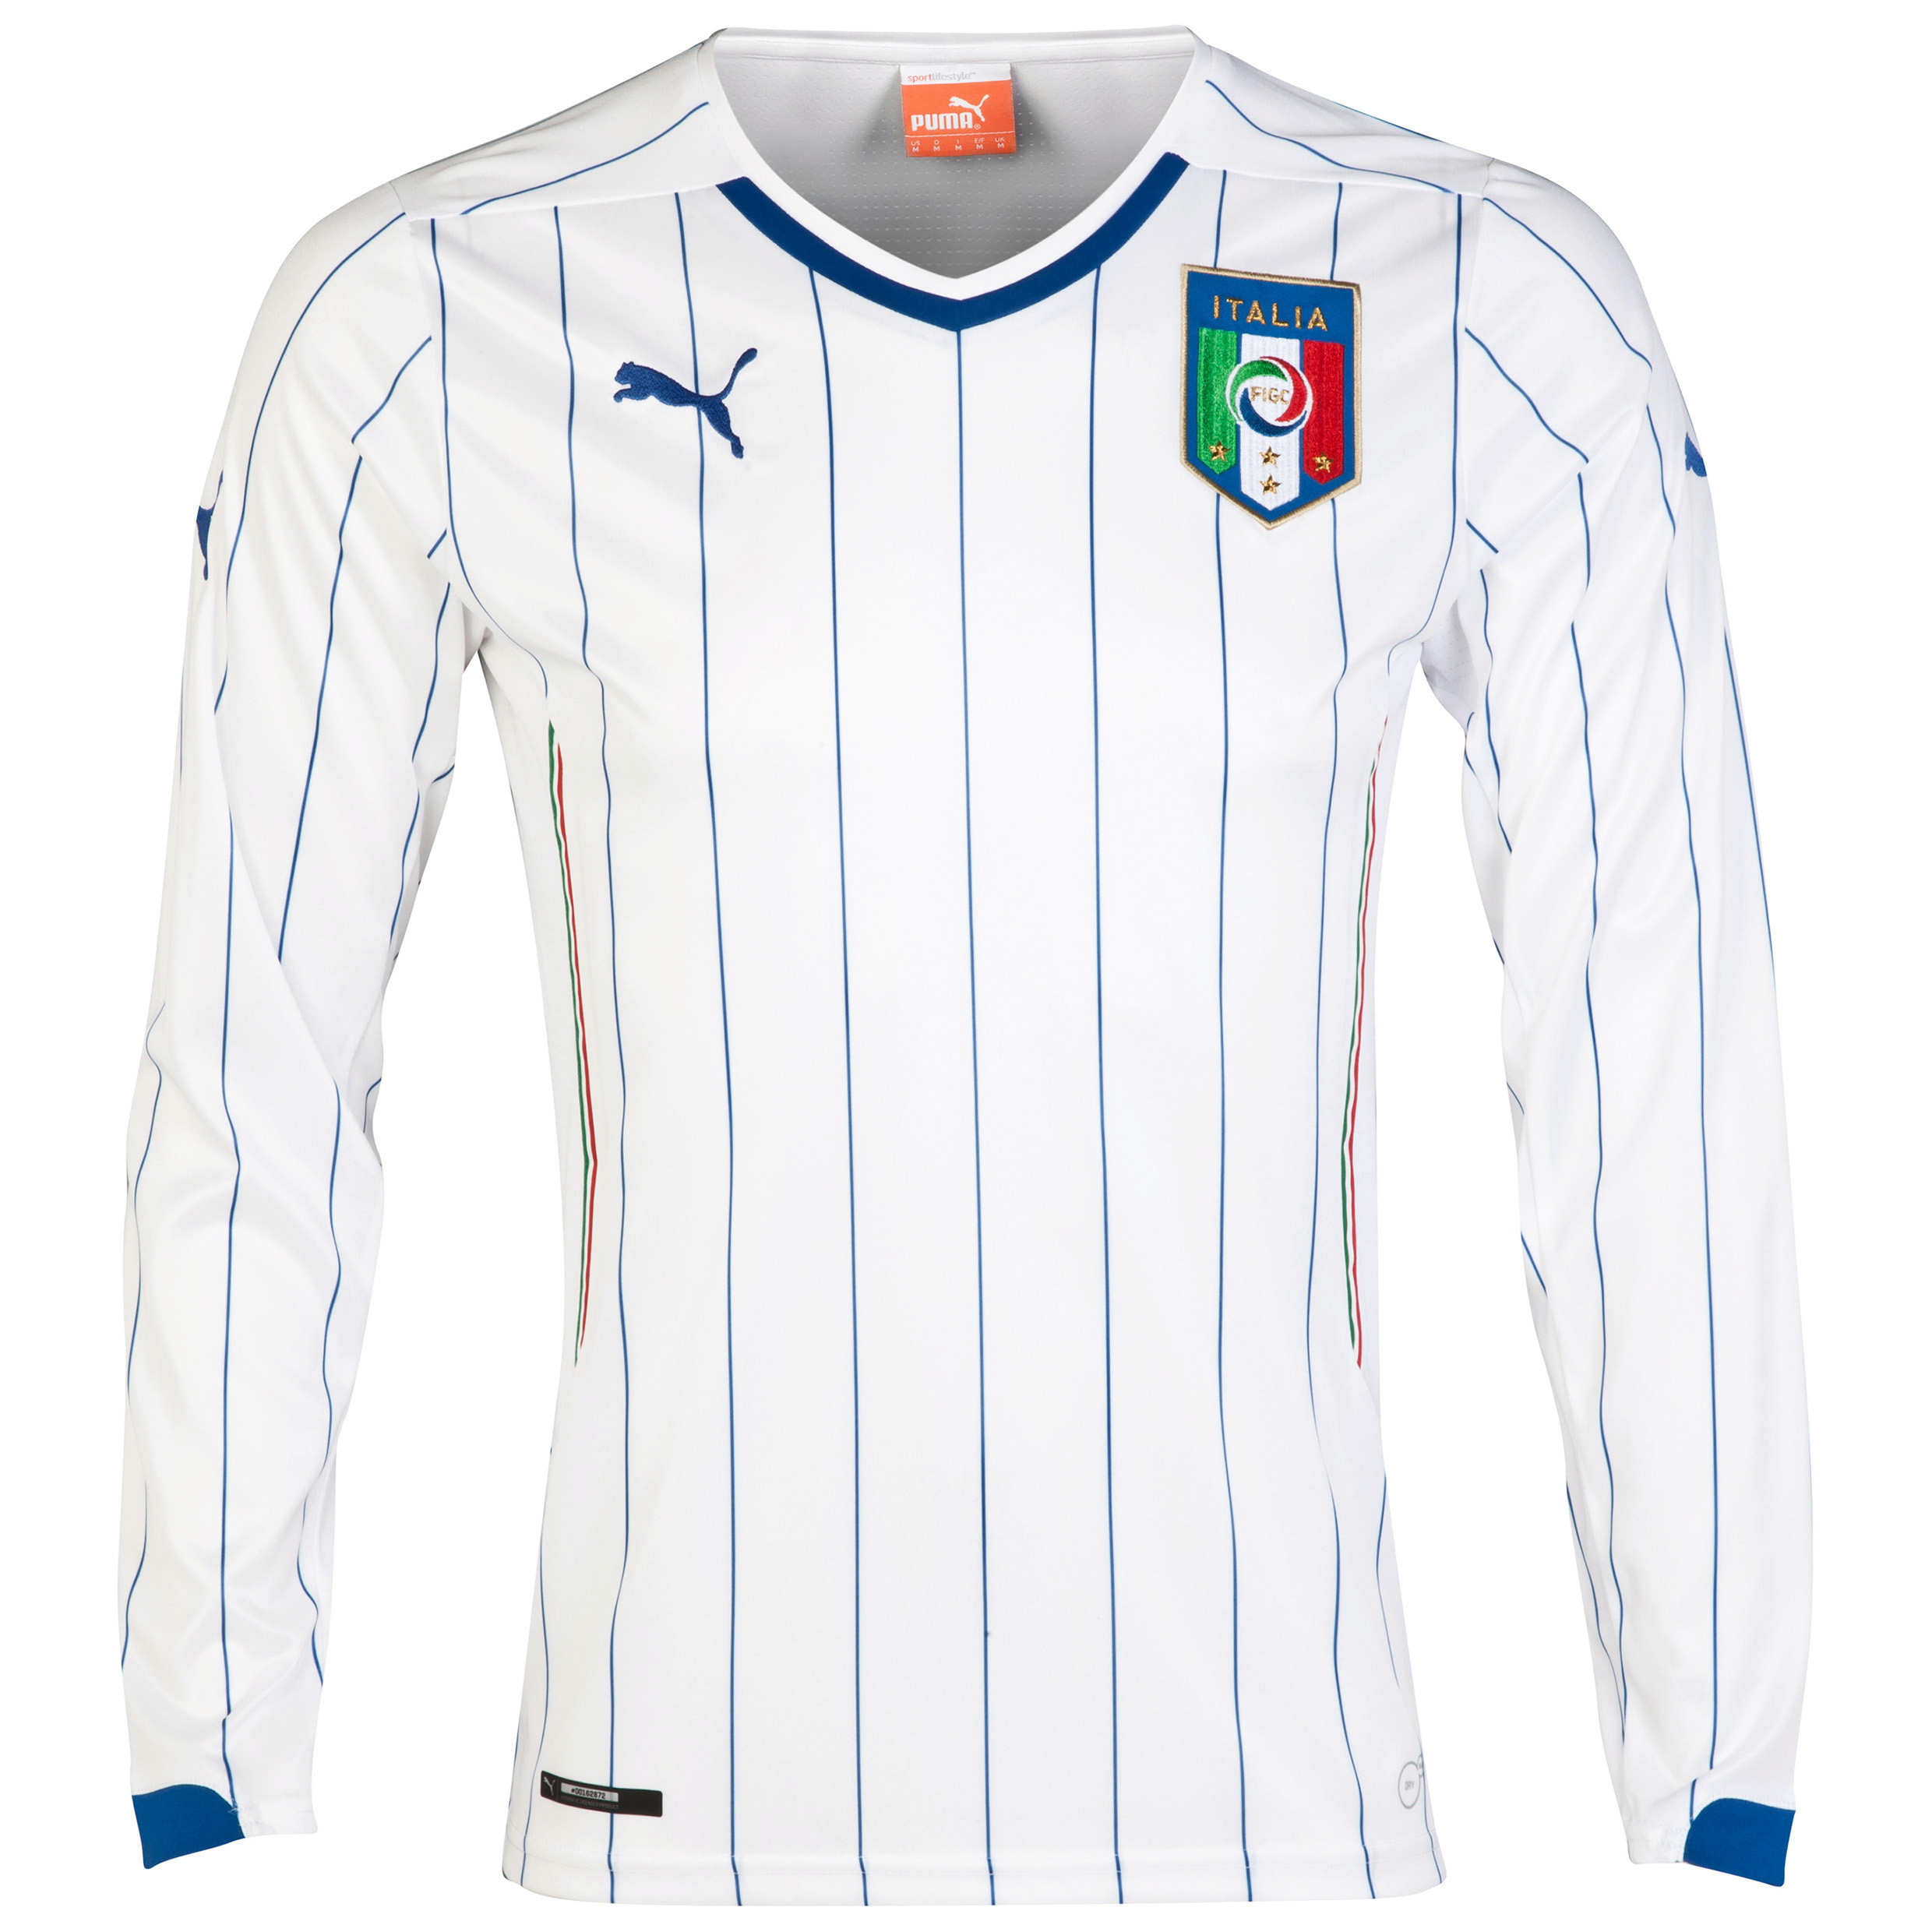 Italy Away Shirt 2013/14 - Long Sleeved